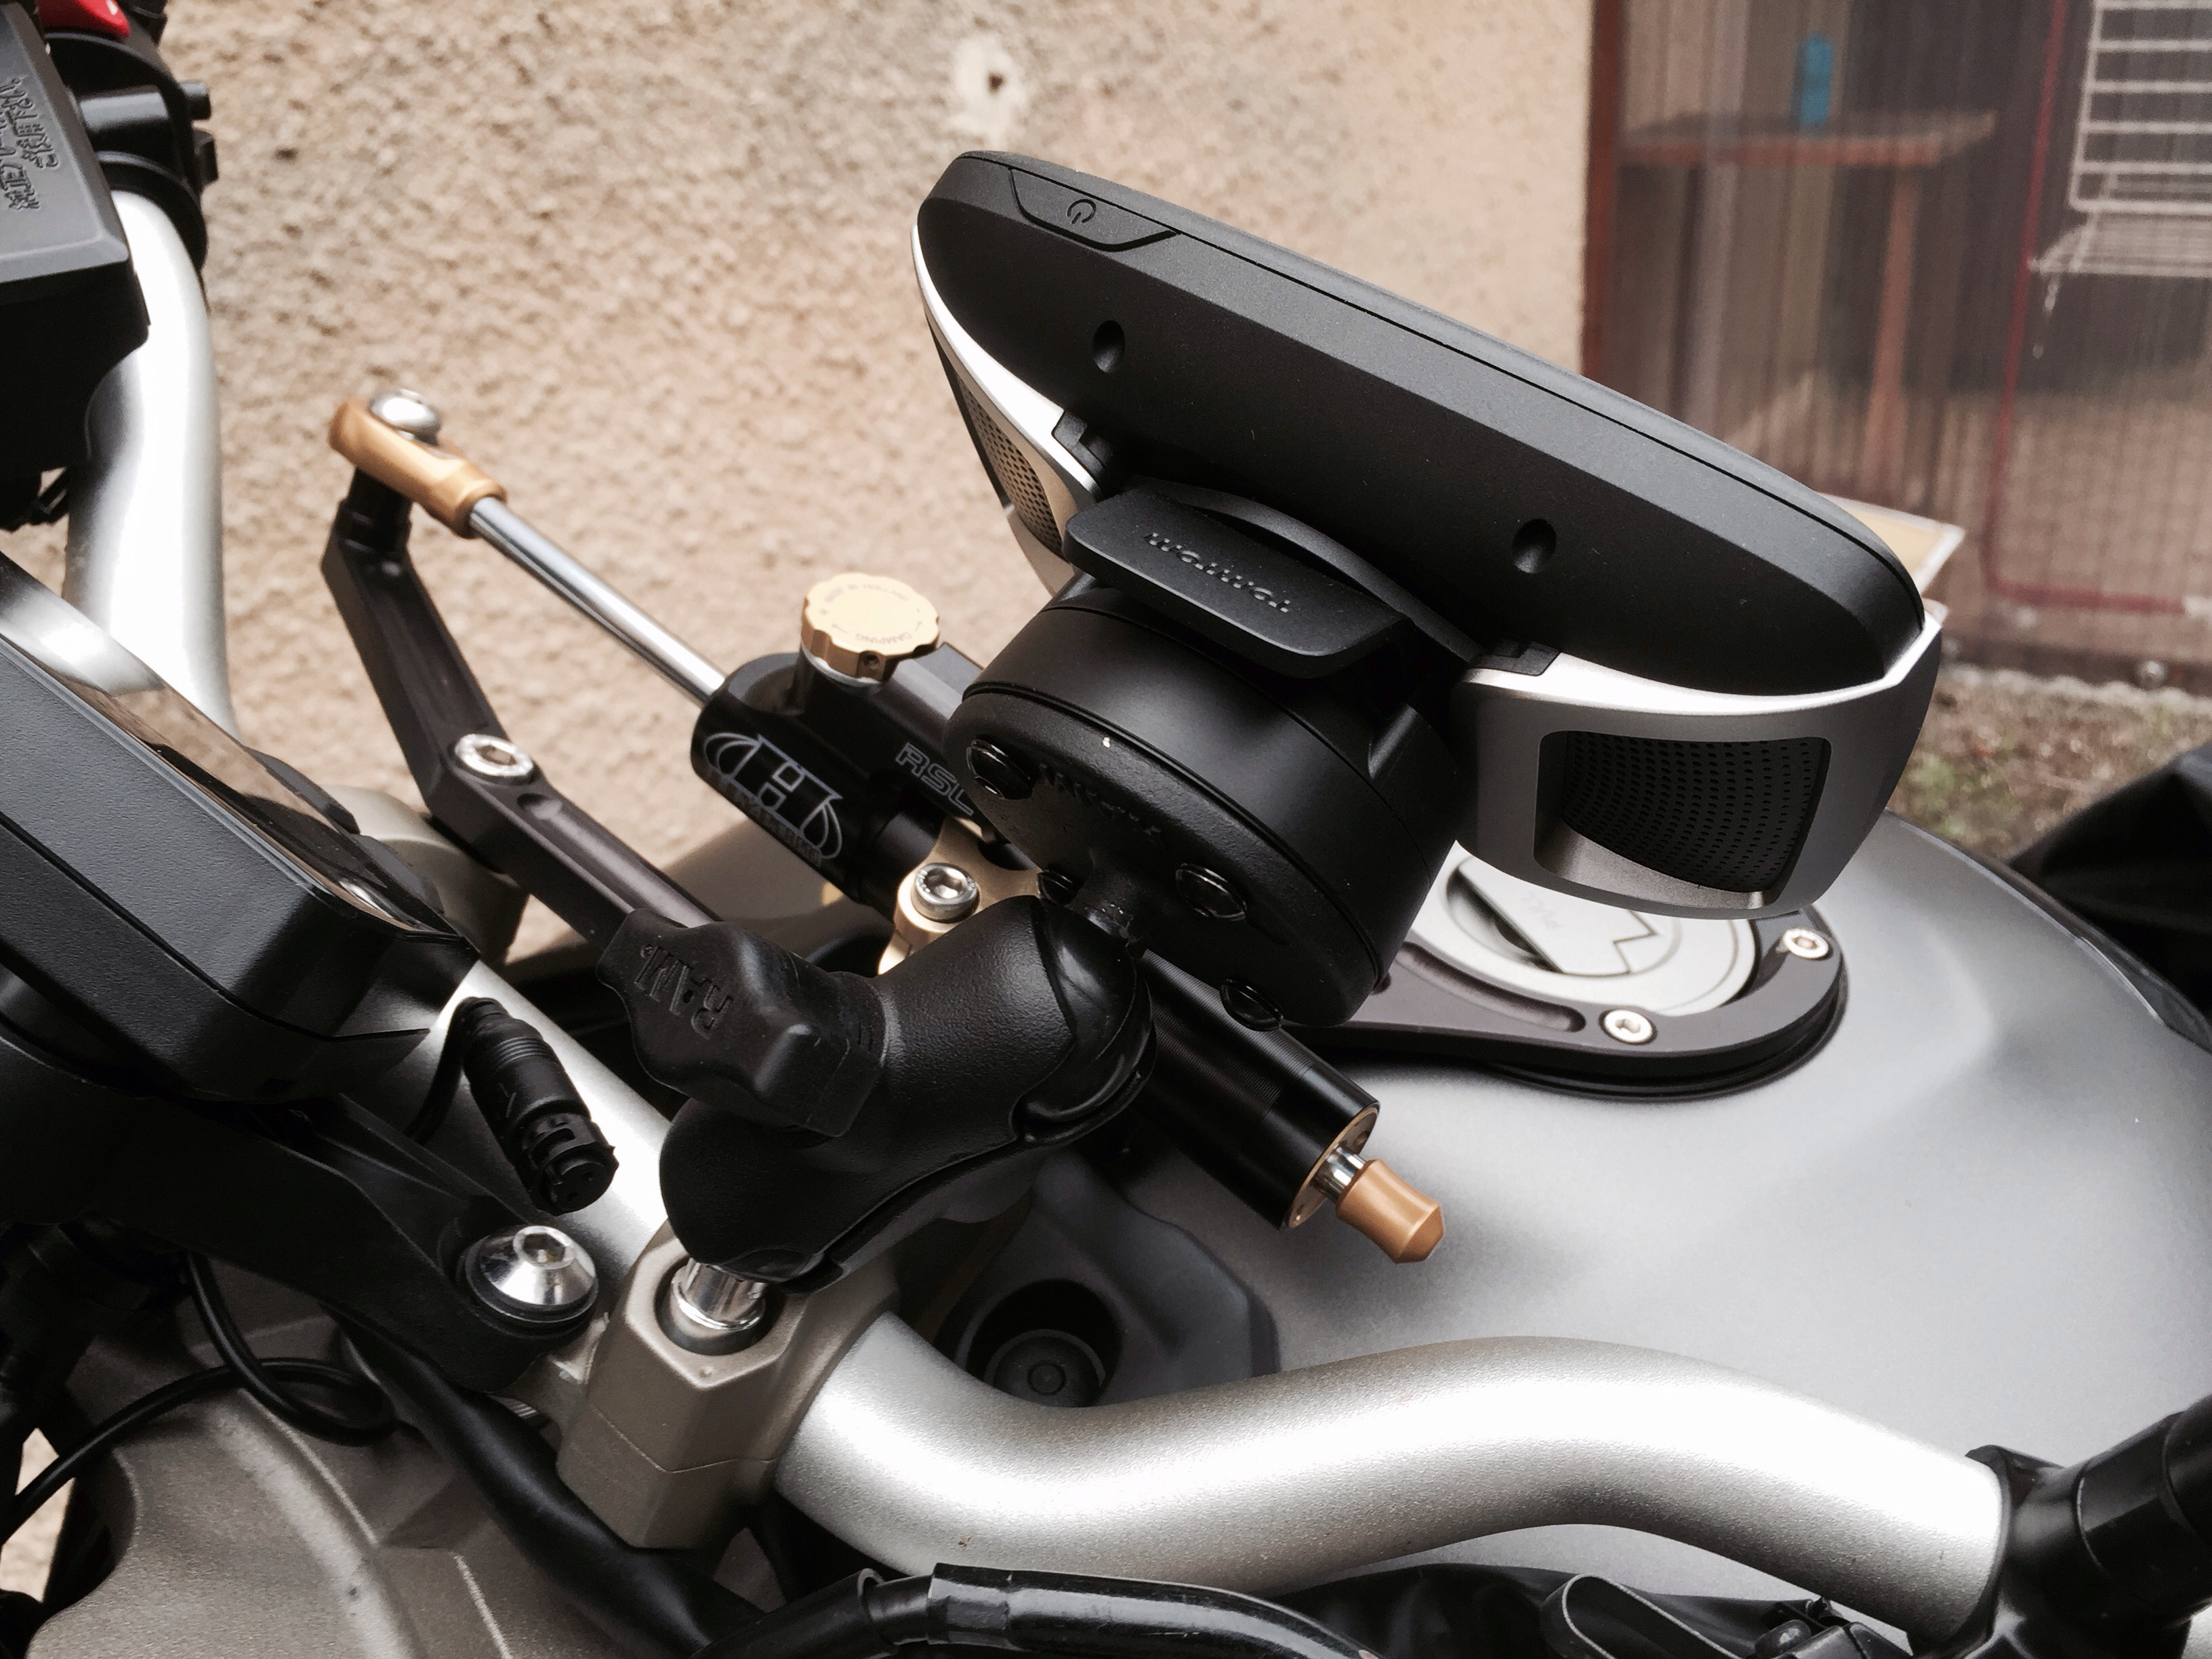 Support GPS Tomtom Rider / Fixation au compteur 1440694635-iphone-image-08-27-2015